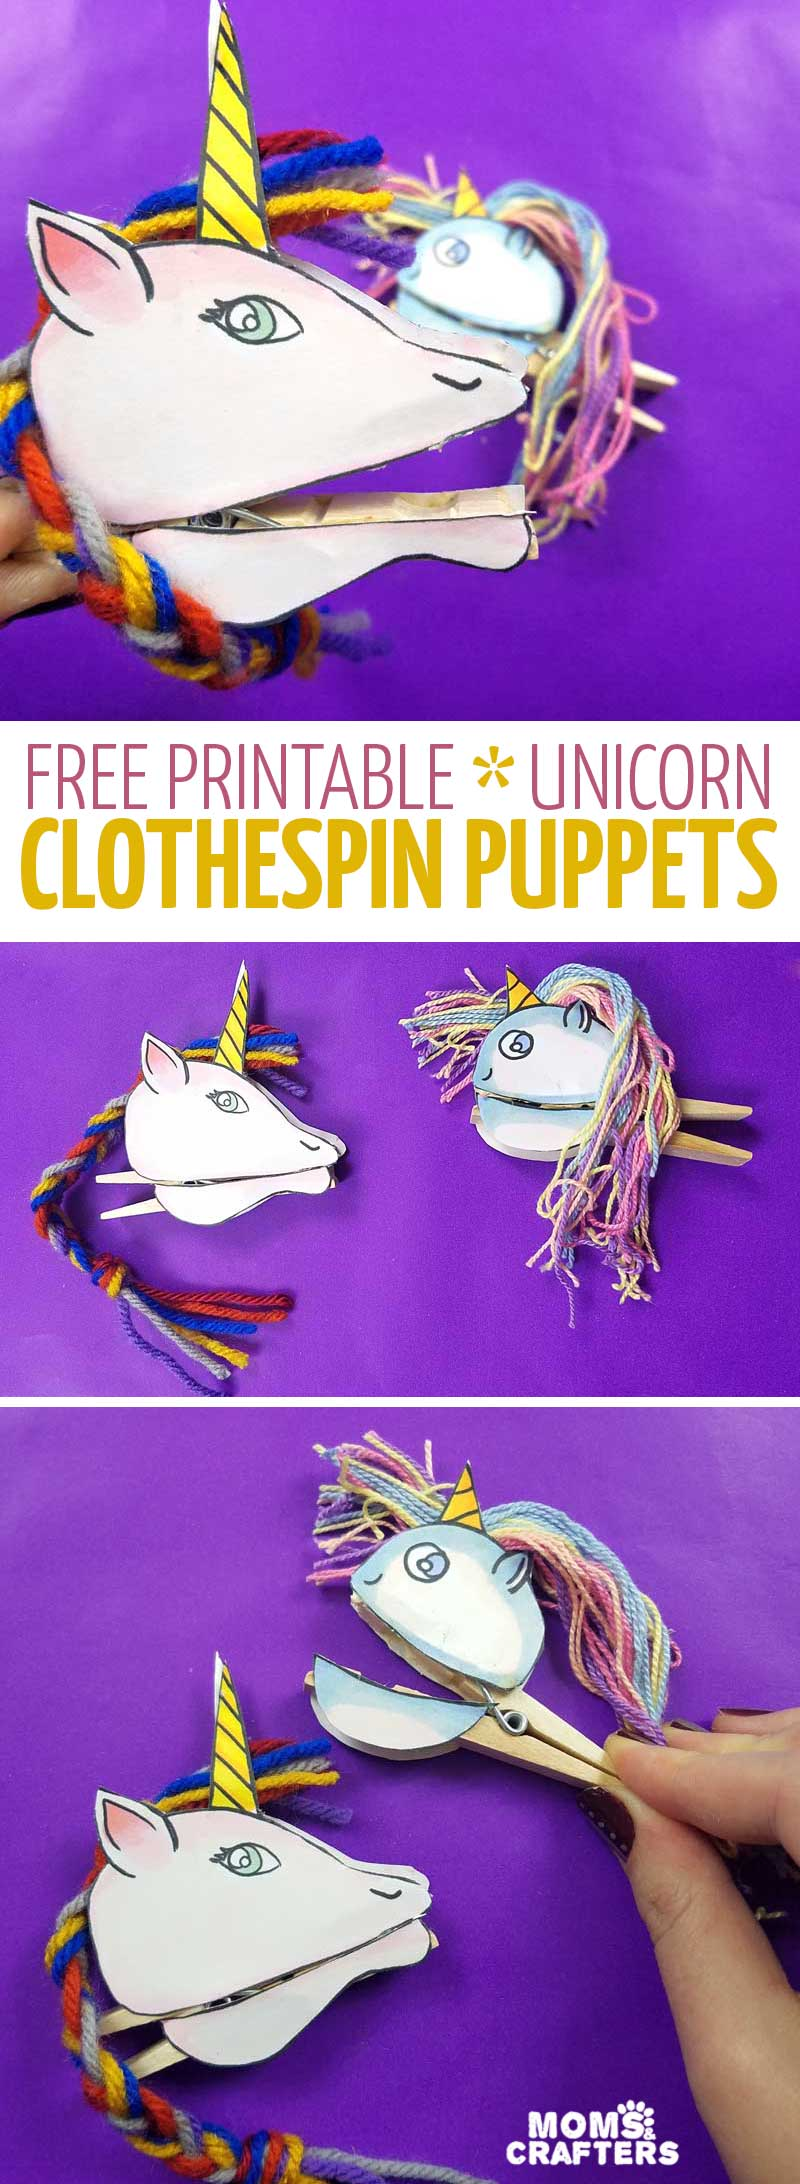 Paper Unicorn Clothespin Puppets